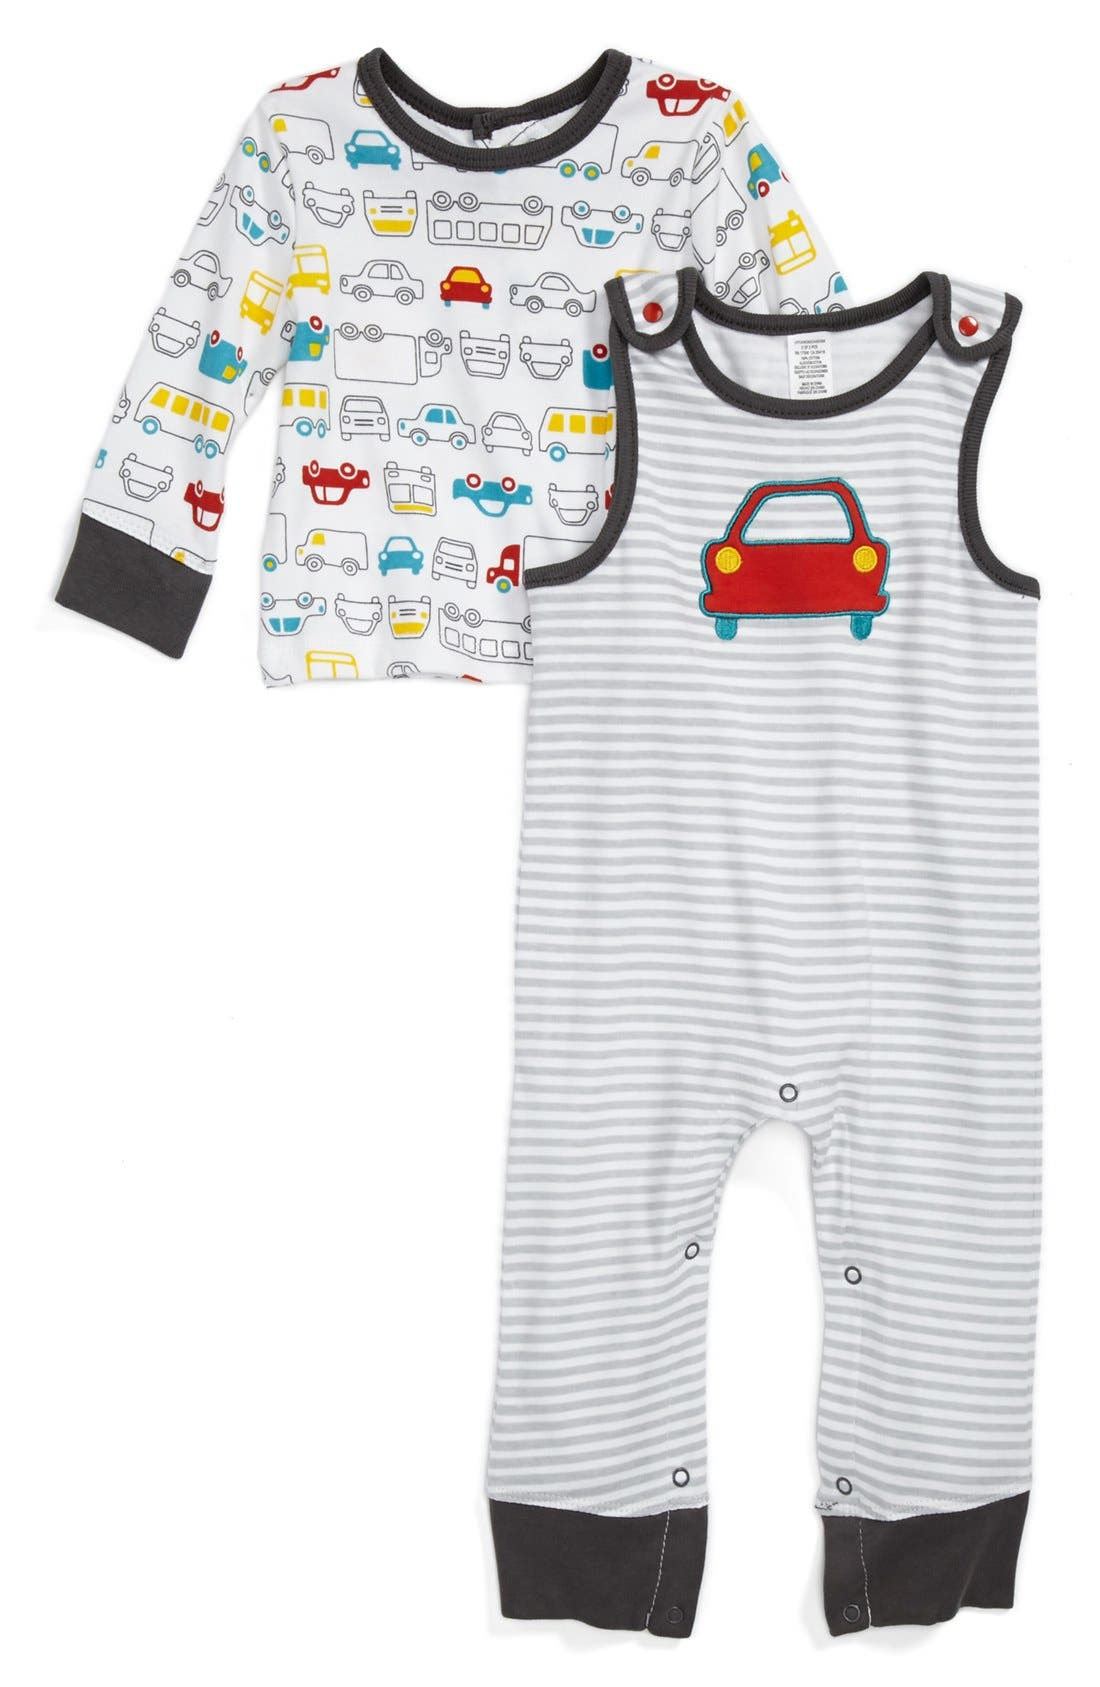 Main Image - Offspring 'Motorway' Top & Overalls (Baby Boys)